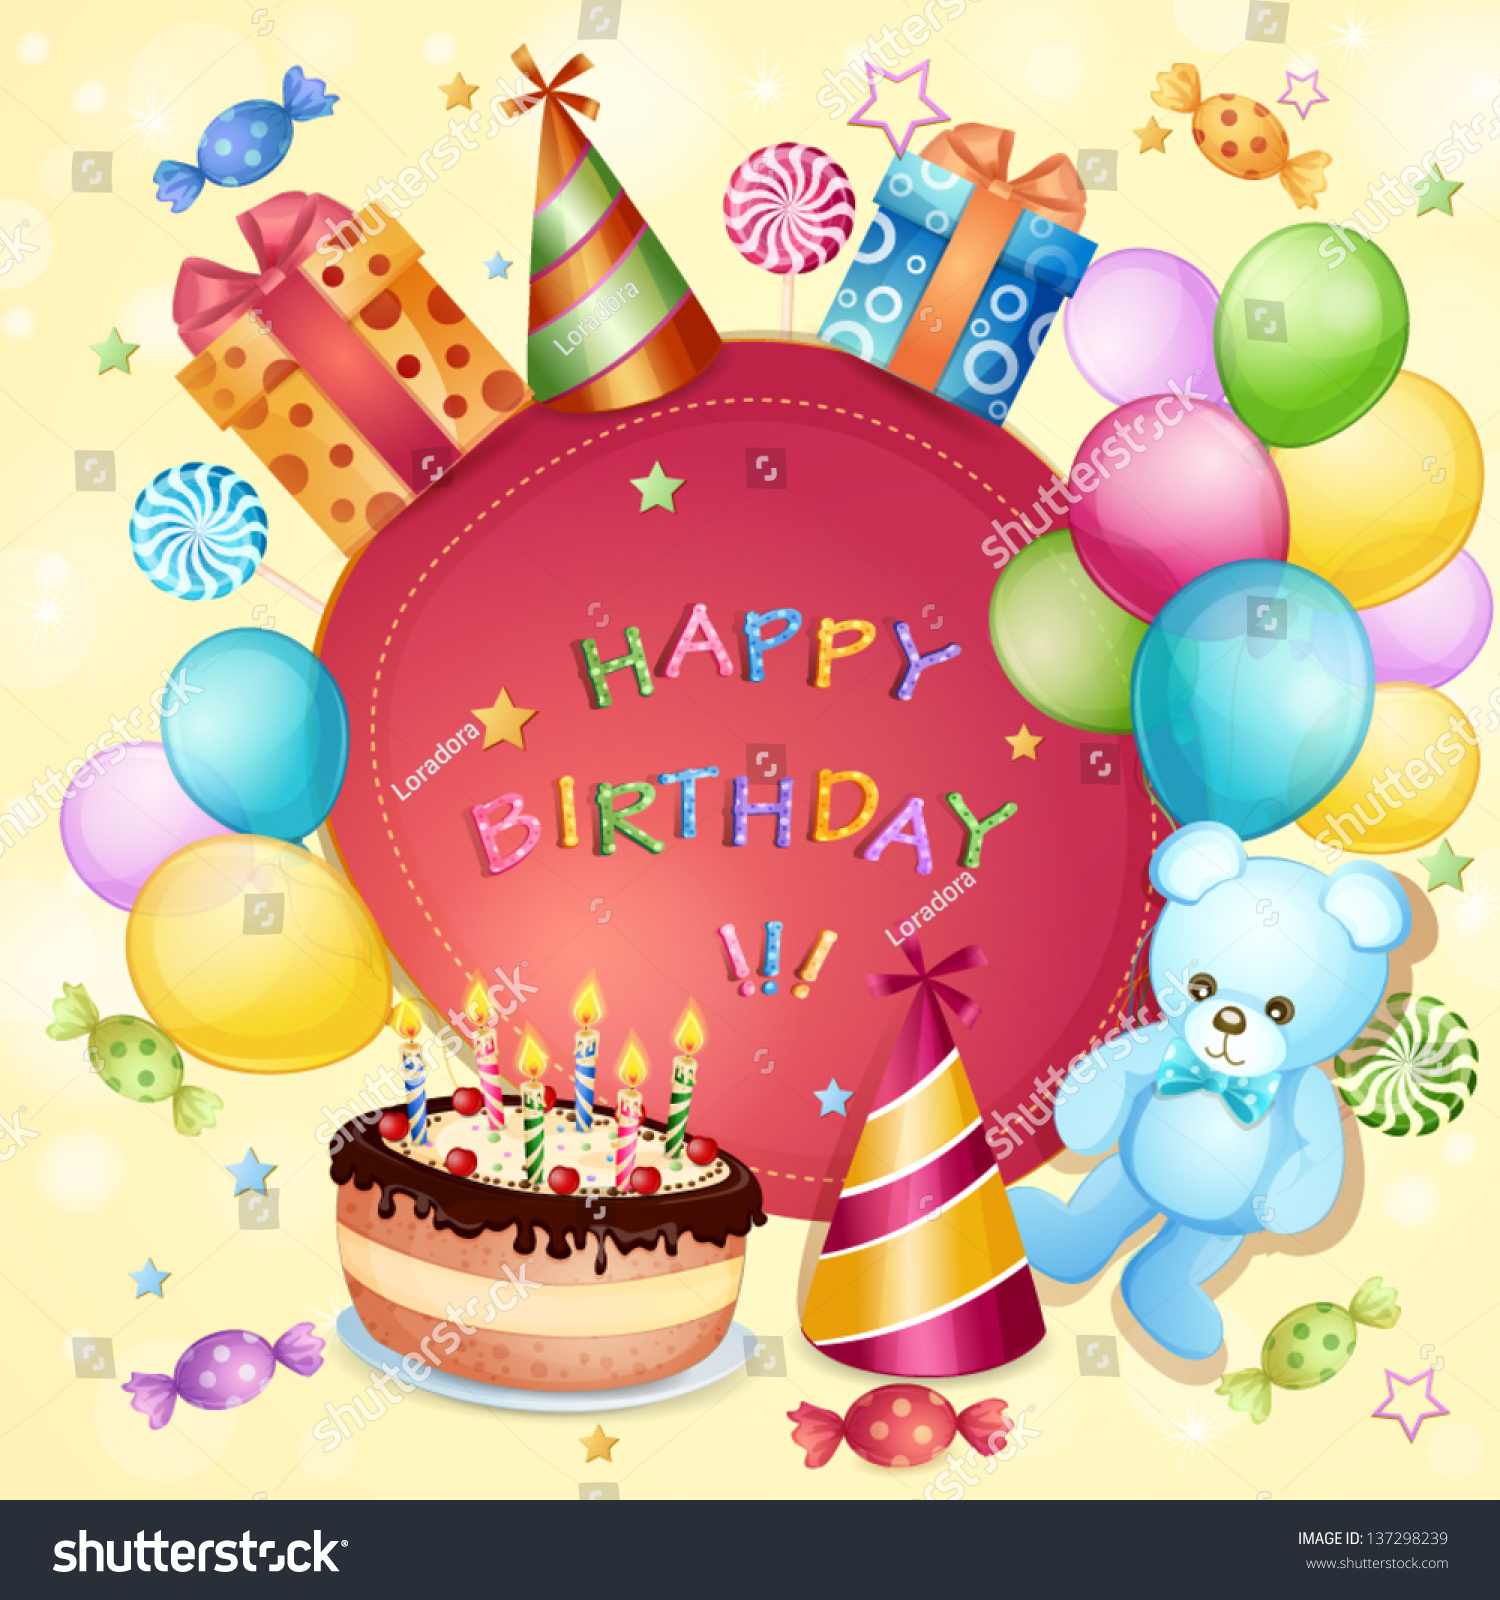 Swell Birthday Card Birthday Cake Balloons Gifts Stock Vector Royalty Personalised Birthday Cards Veneteletsinfo